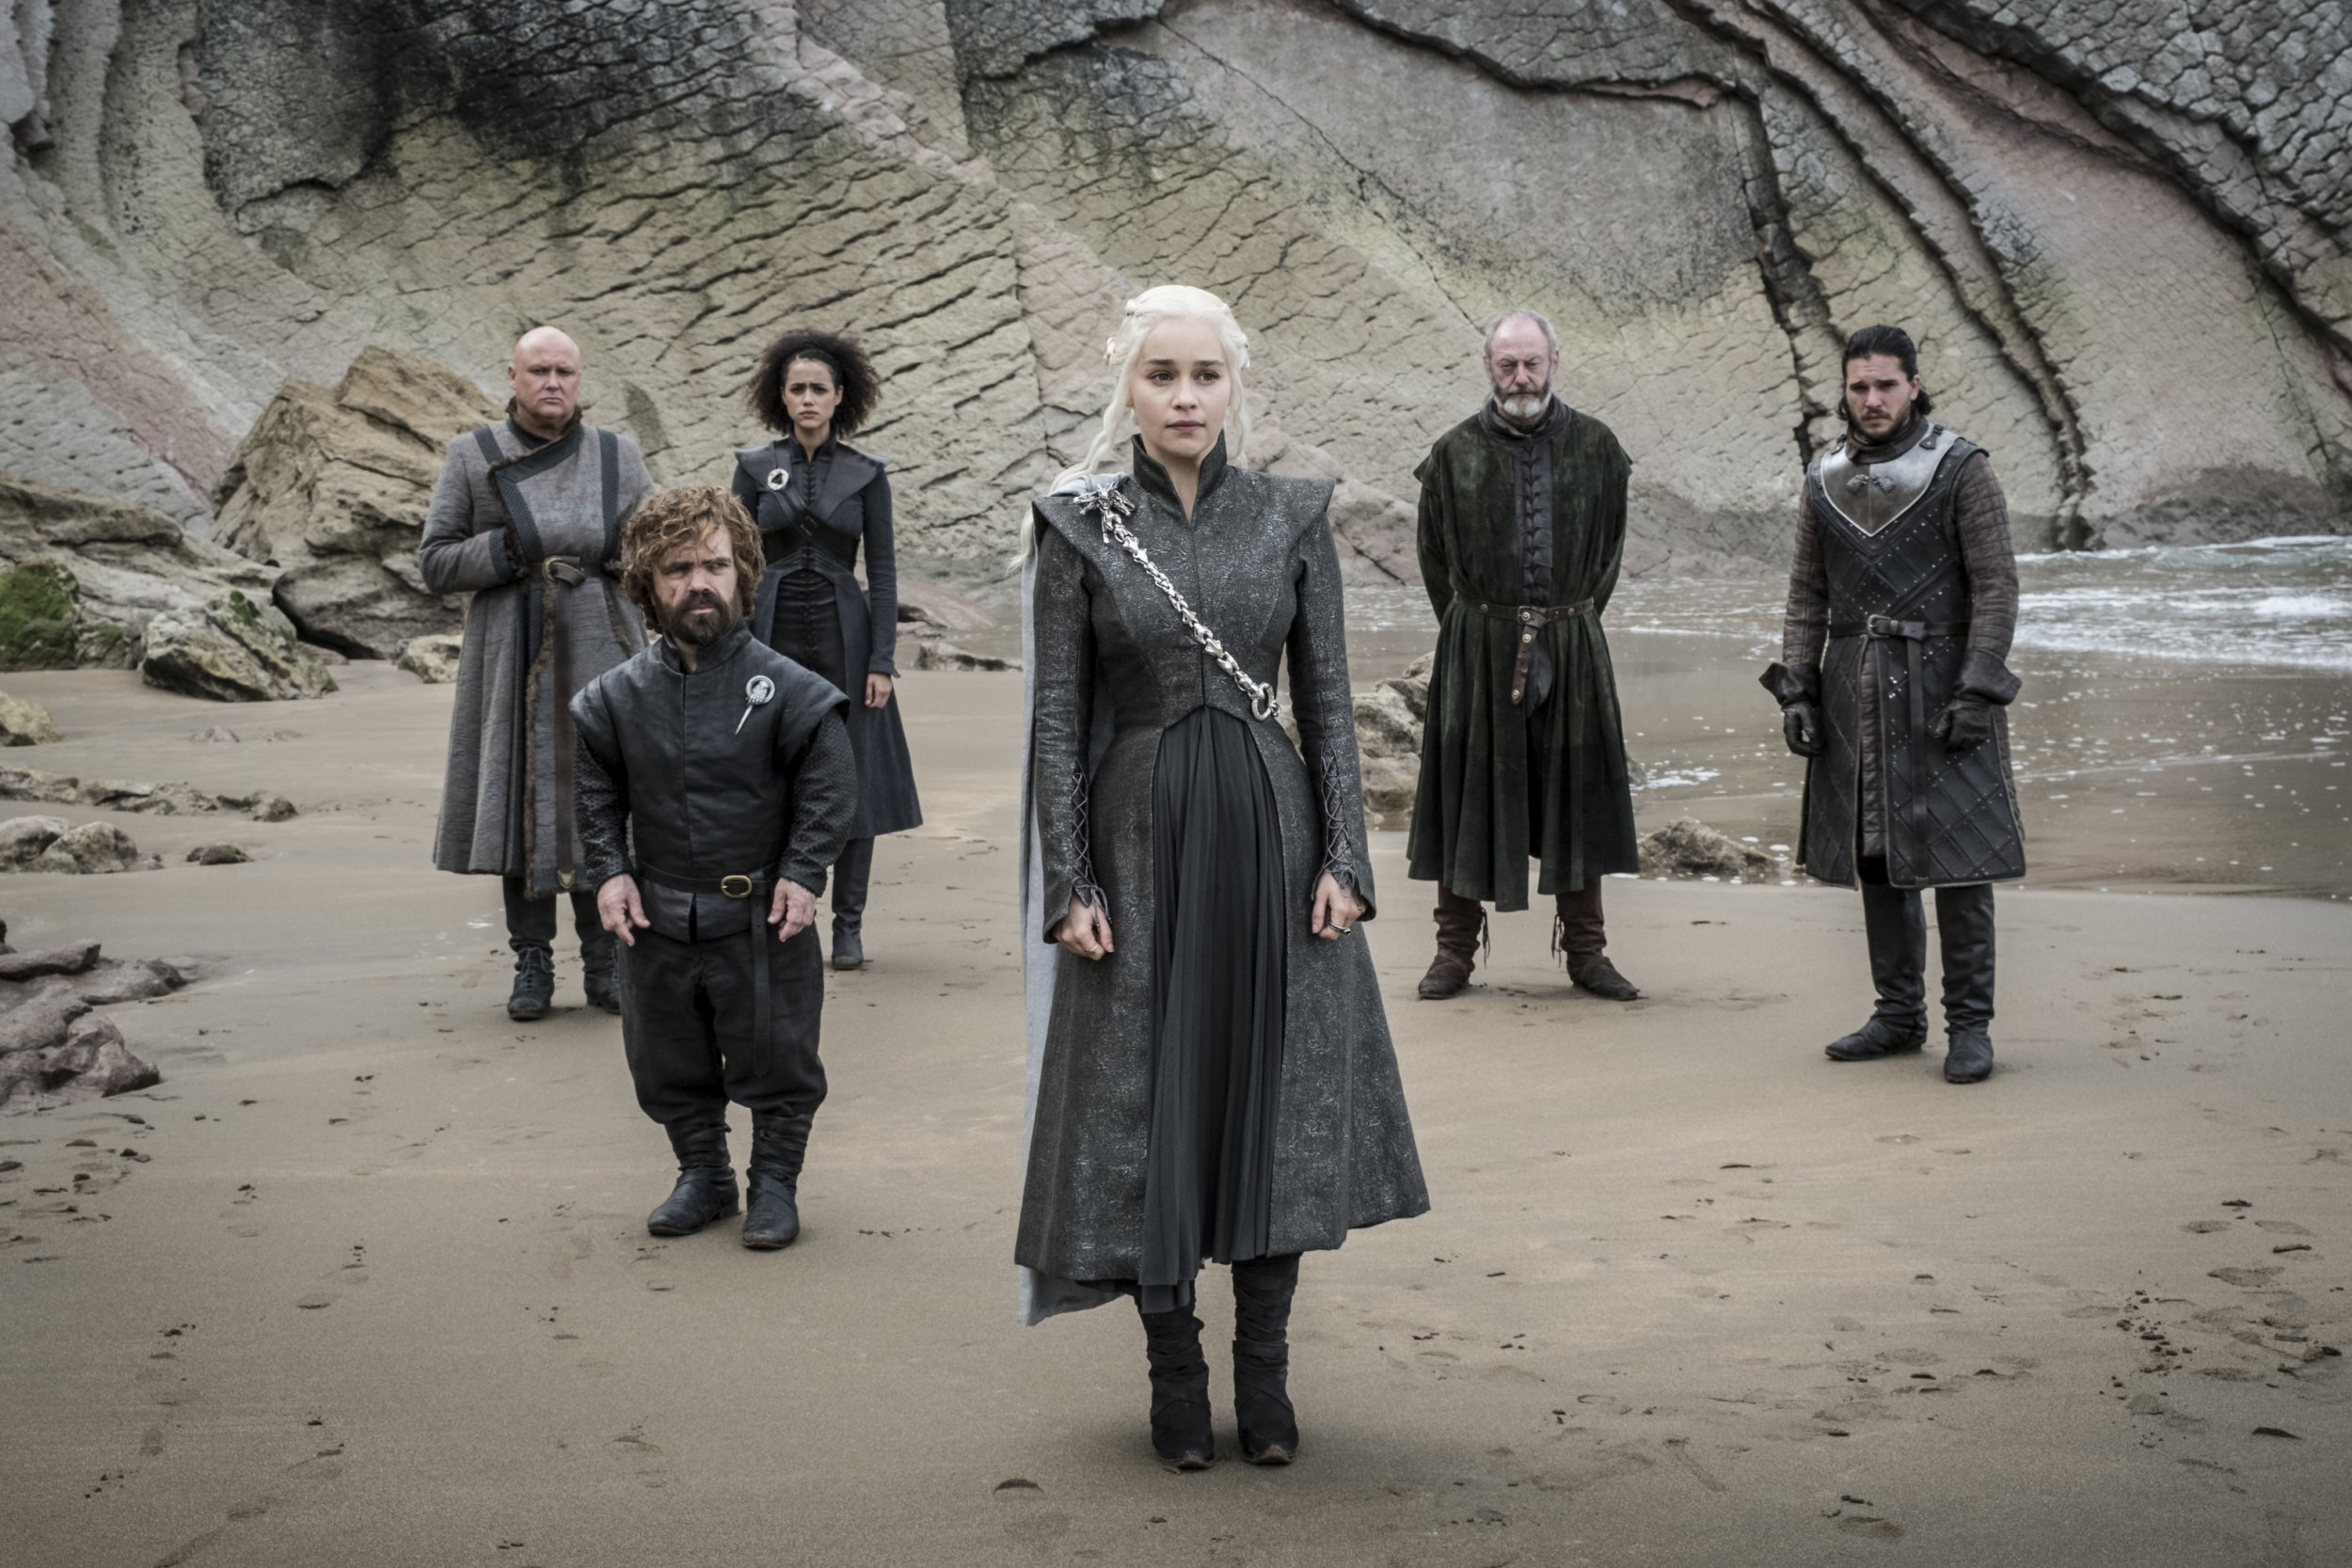 Game of Thrones - Dany, Jon, Davos and Missandei